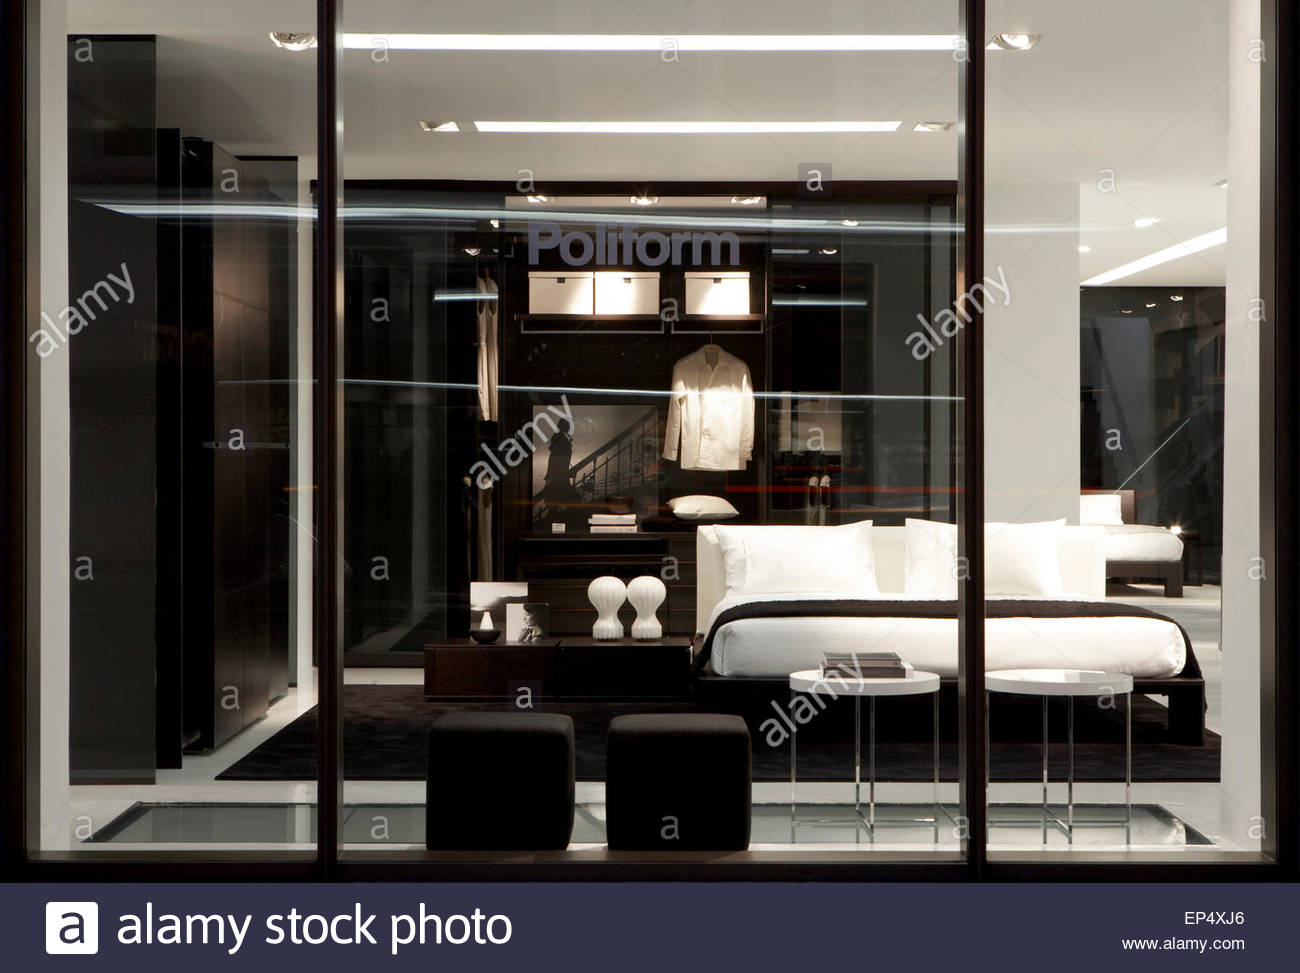 Display windows detail poliform showroom london london united stock photo 82472606 alamy - Poliform showroom ...